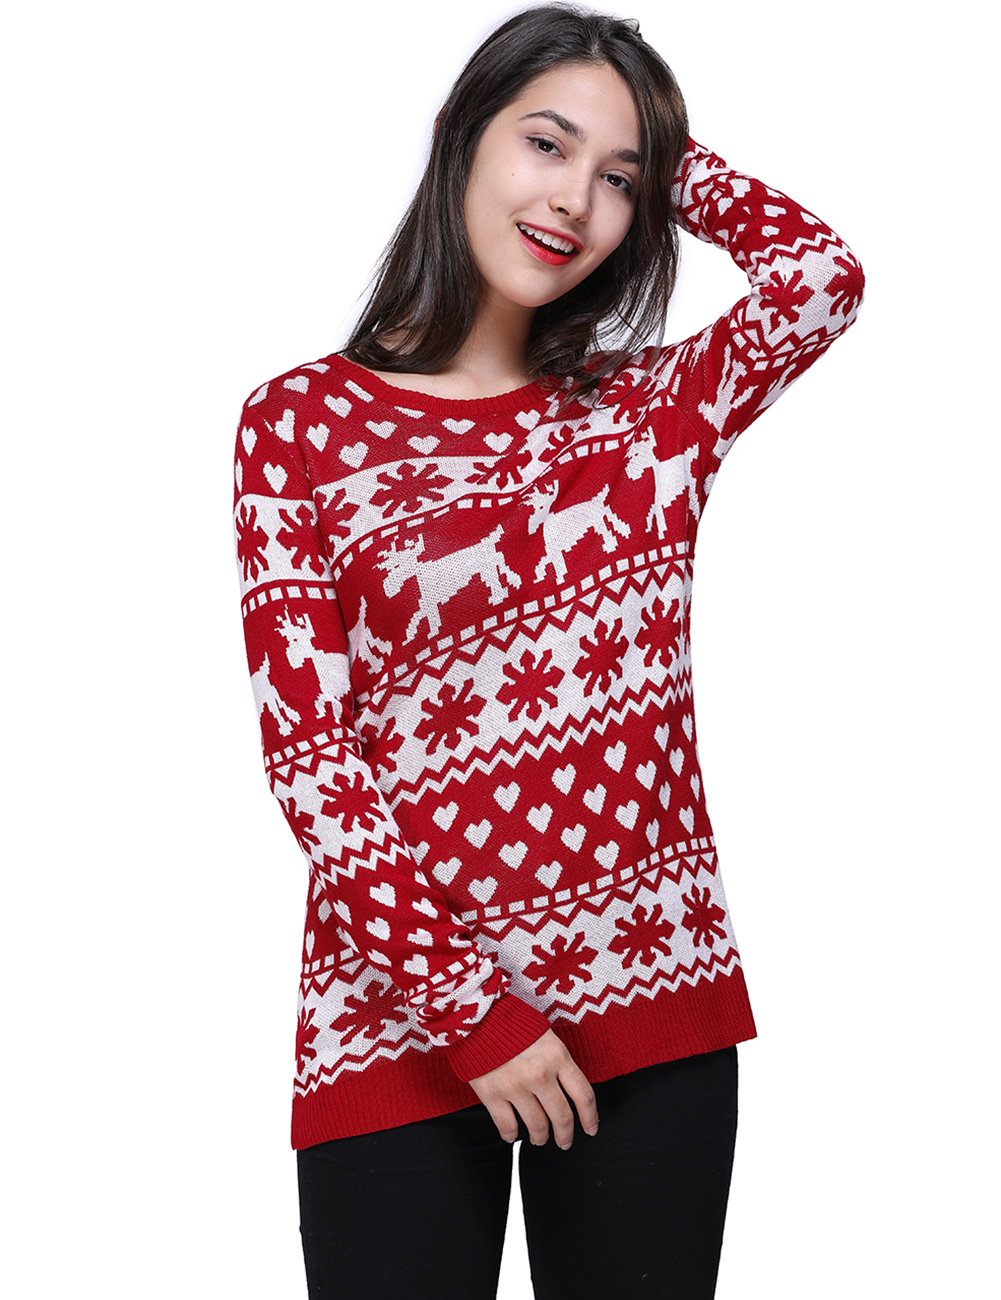 Women Snow Christmas Clothes Sweater Cotton Red Long Sleeve Pullovers Sweater